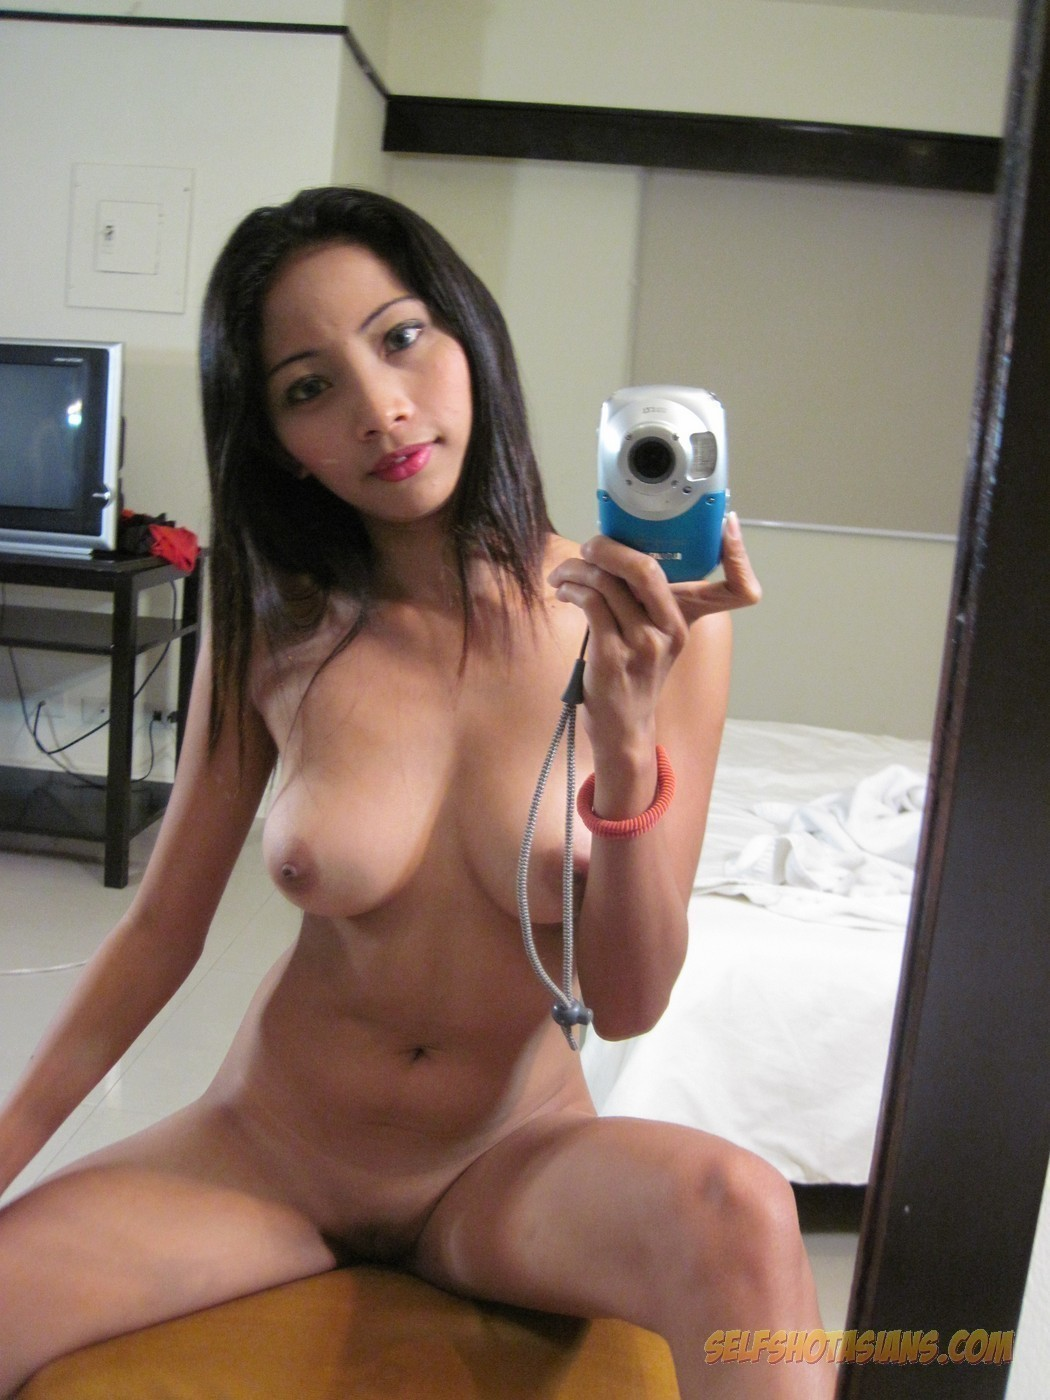 naked girl mirror selfies